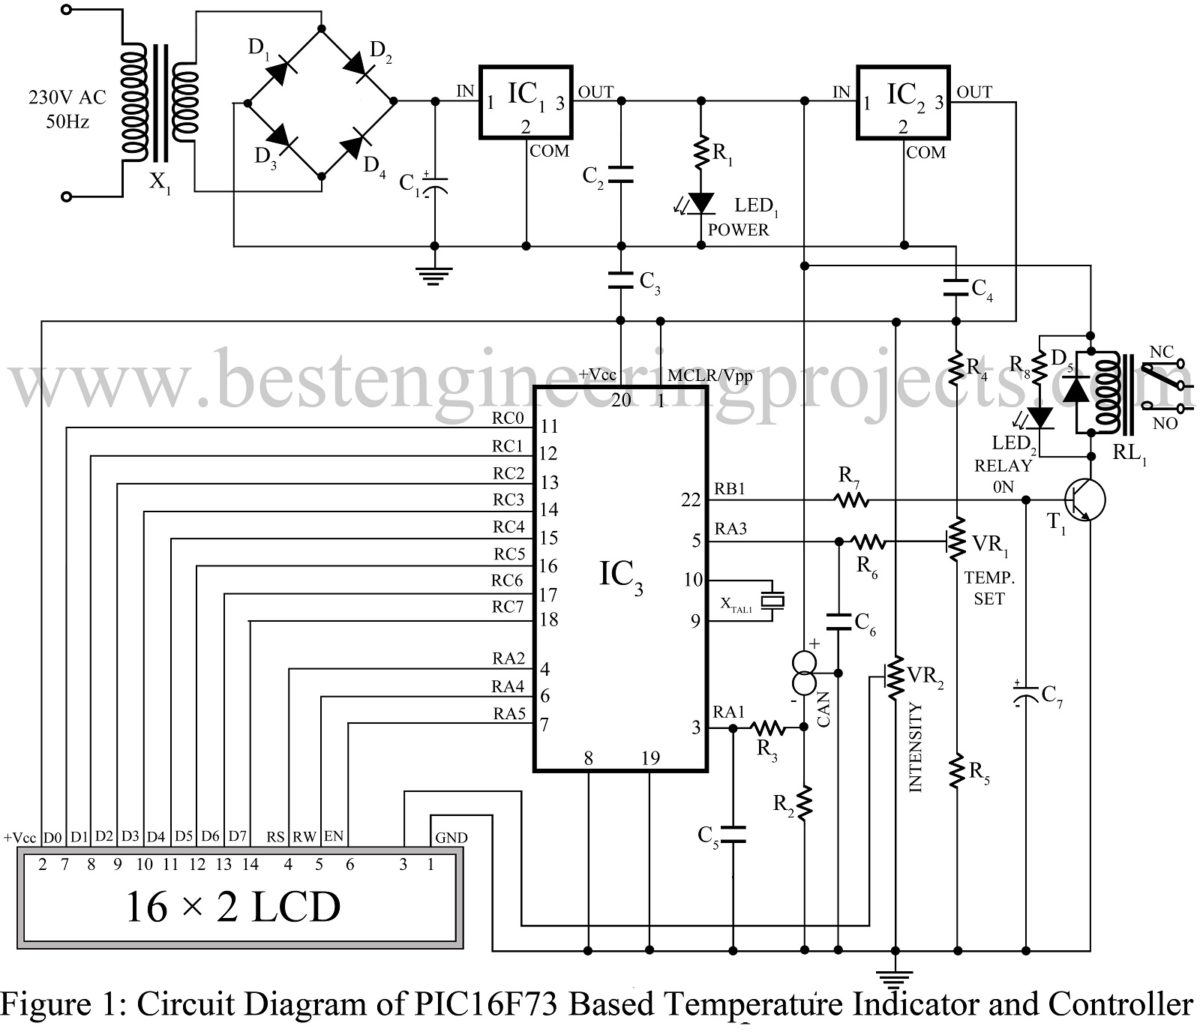 pic16f73 based temperature indicator and controller best engineeringpic16f73 based temperature indicator and controllerpic16f73 based temperature indicator and controller best engineering 1